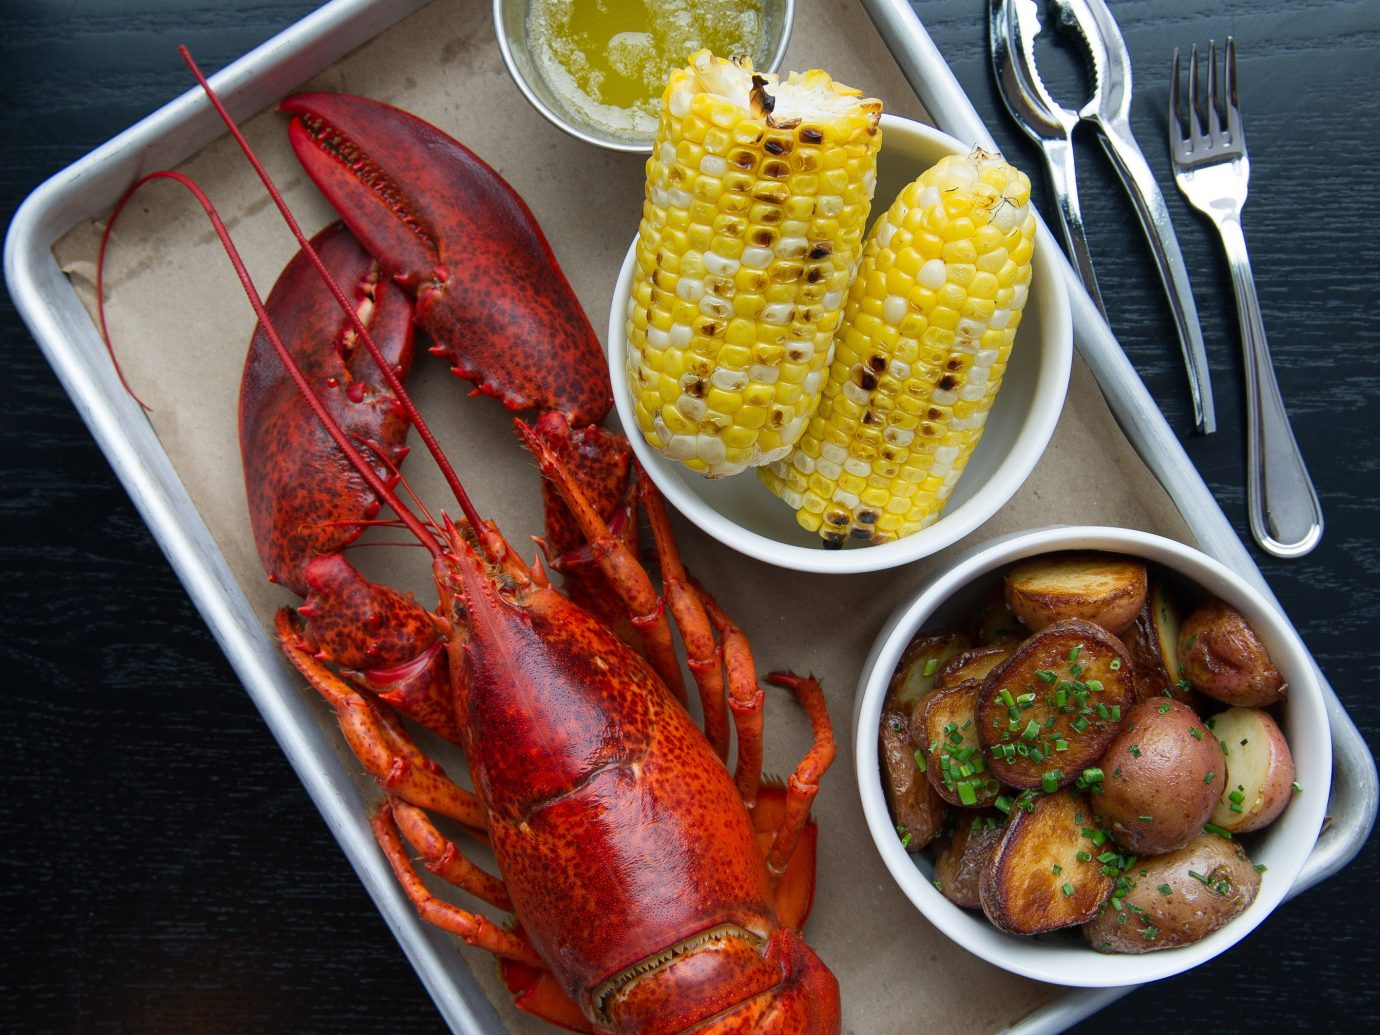 Secret Getaways Trip Ideas food table plate dish meal Seafood fish lobster animal source foods seafood boil produce invertebrate container decapoda cuisine crustacean